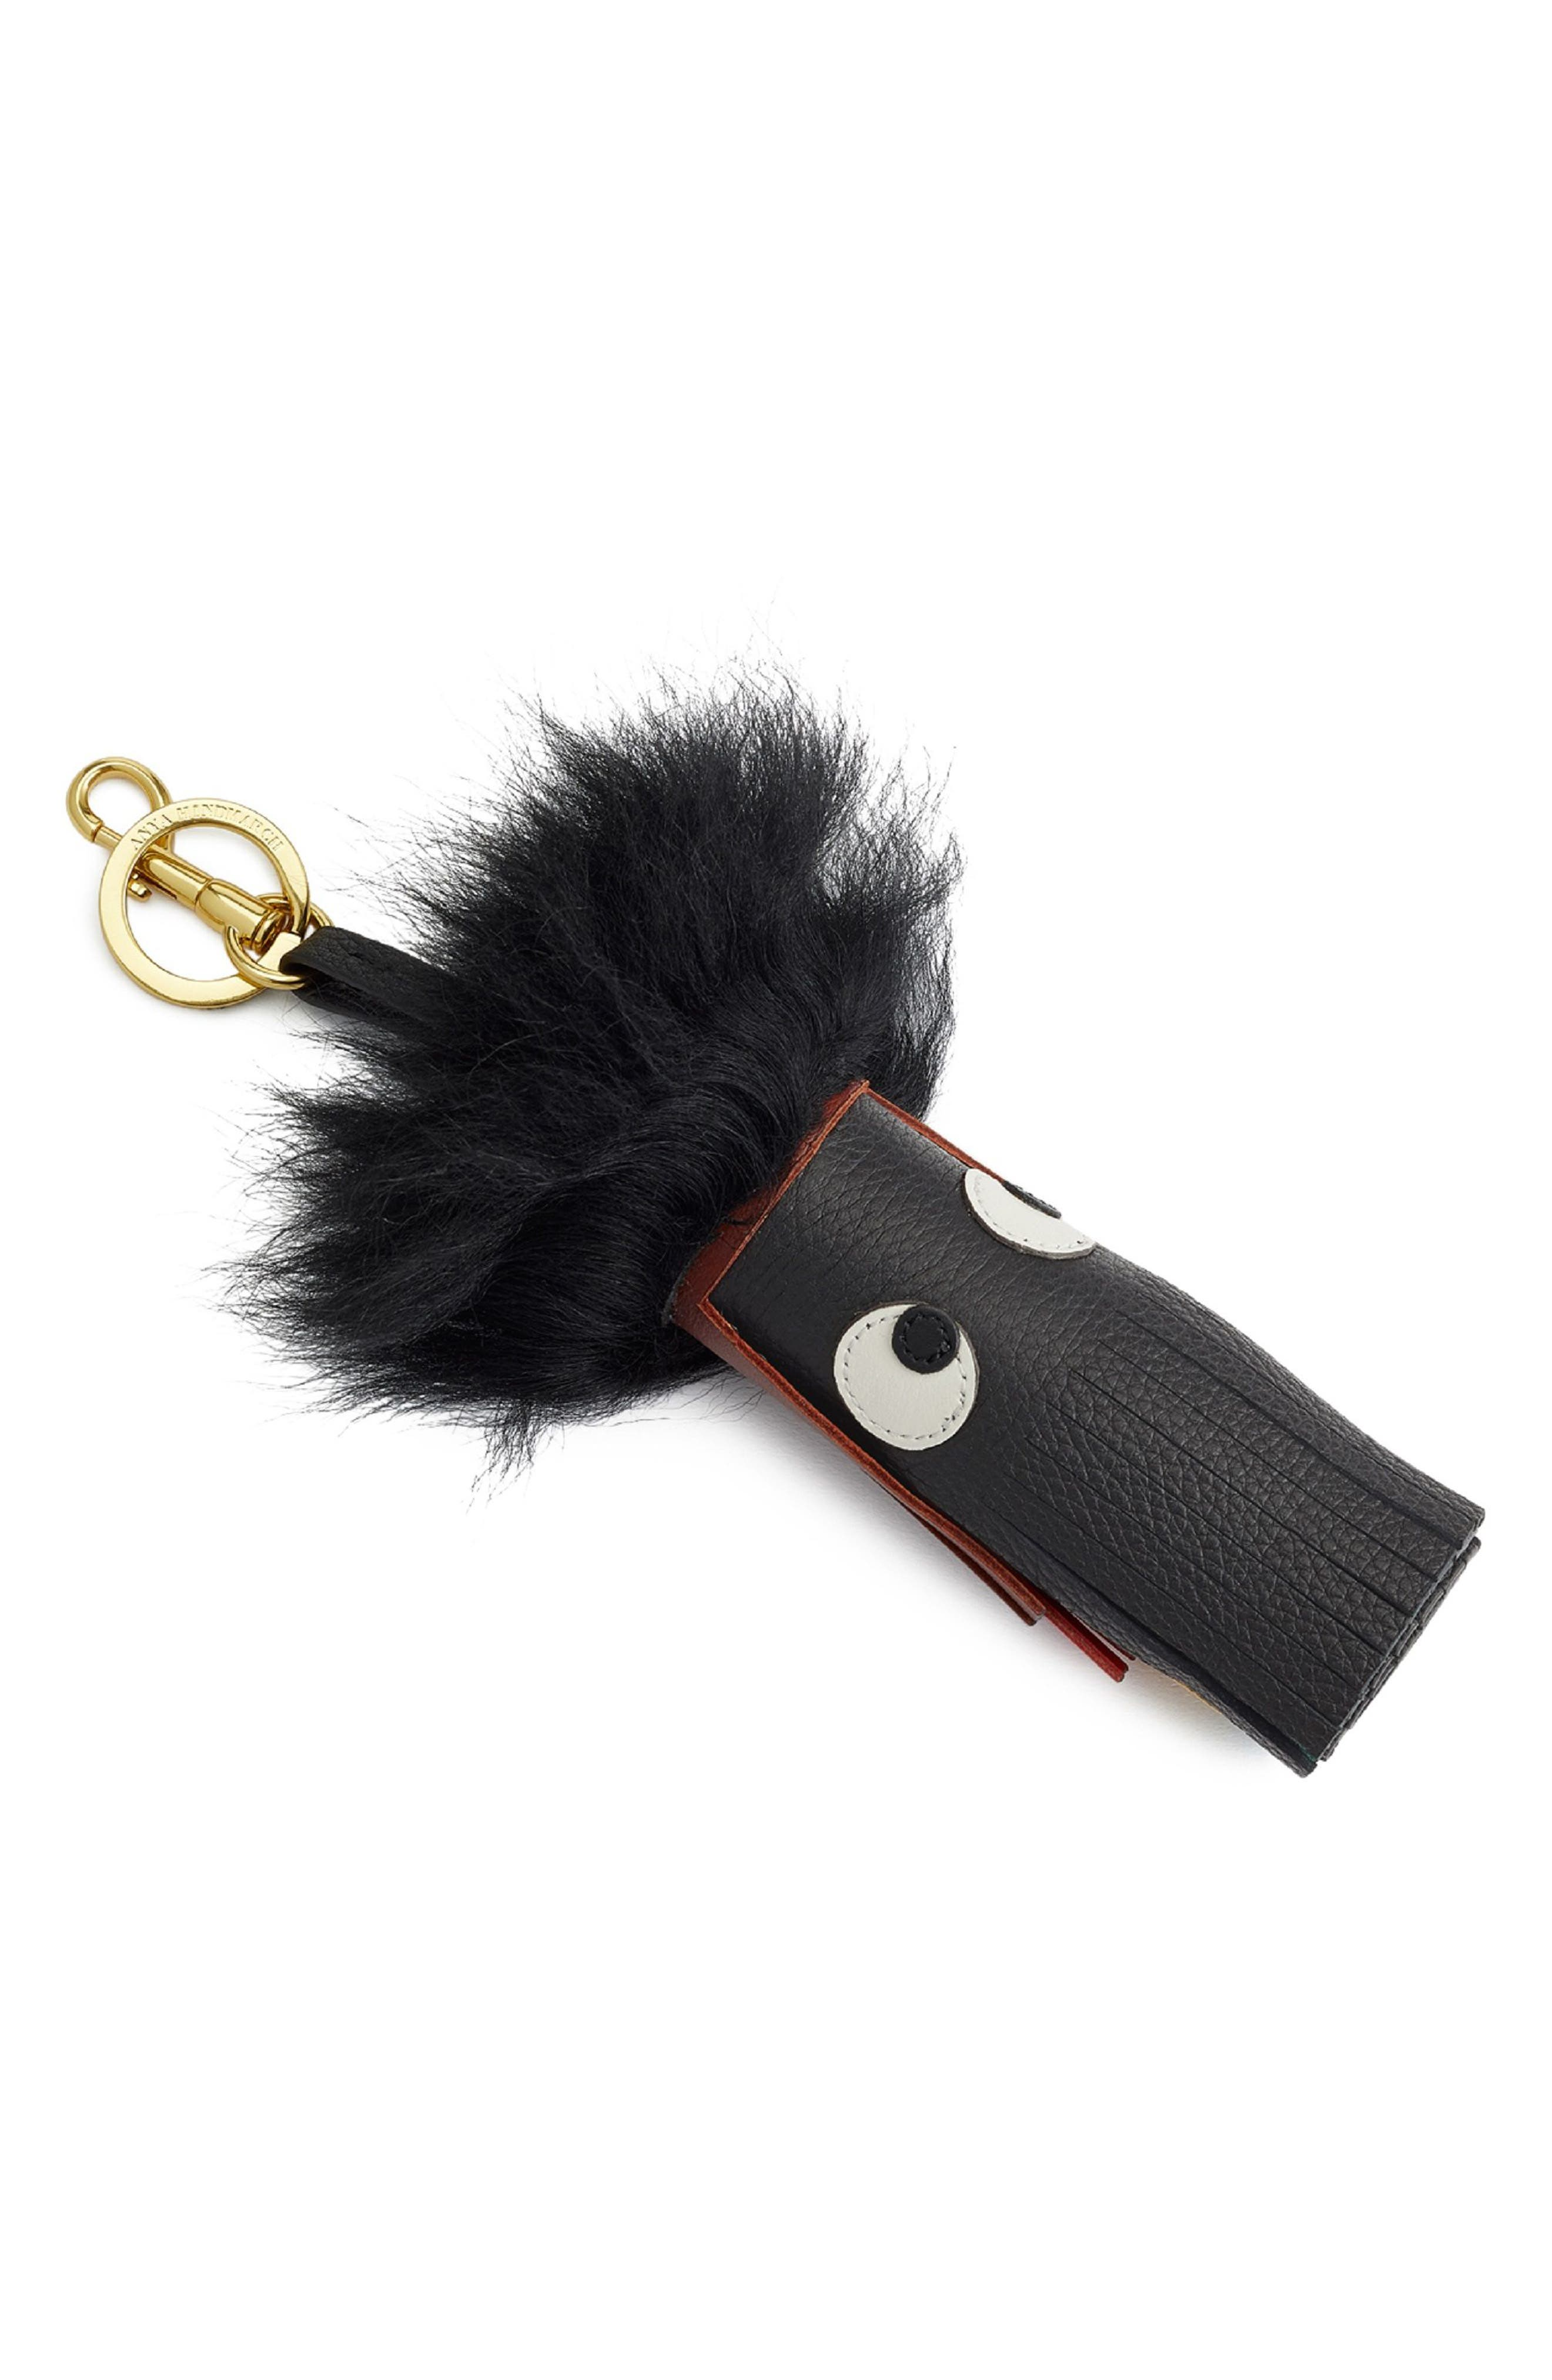 Alternate Image 1 Selected - Anya Hindmarch Build a Bag Genuine Shearling Creature Bag Charm